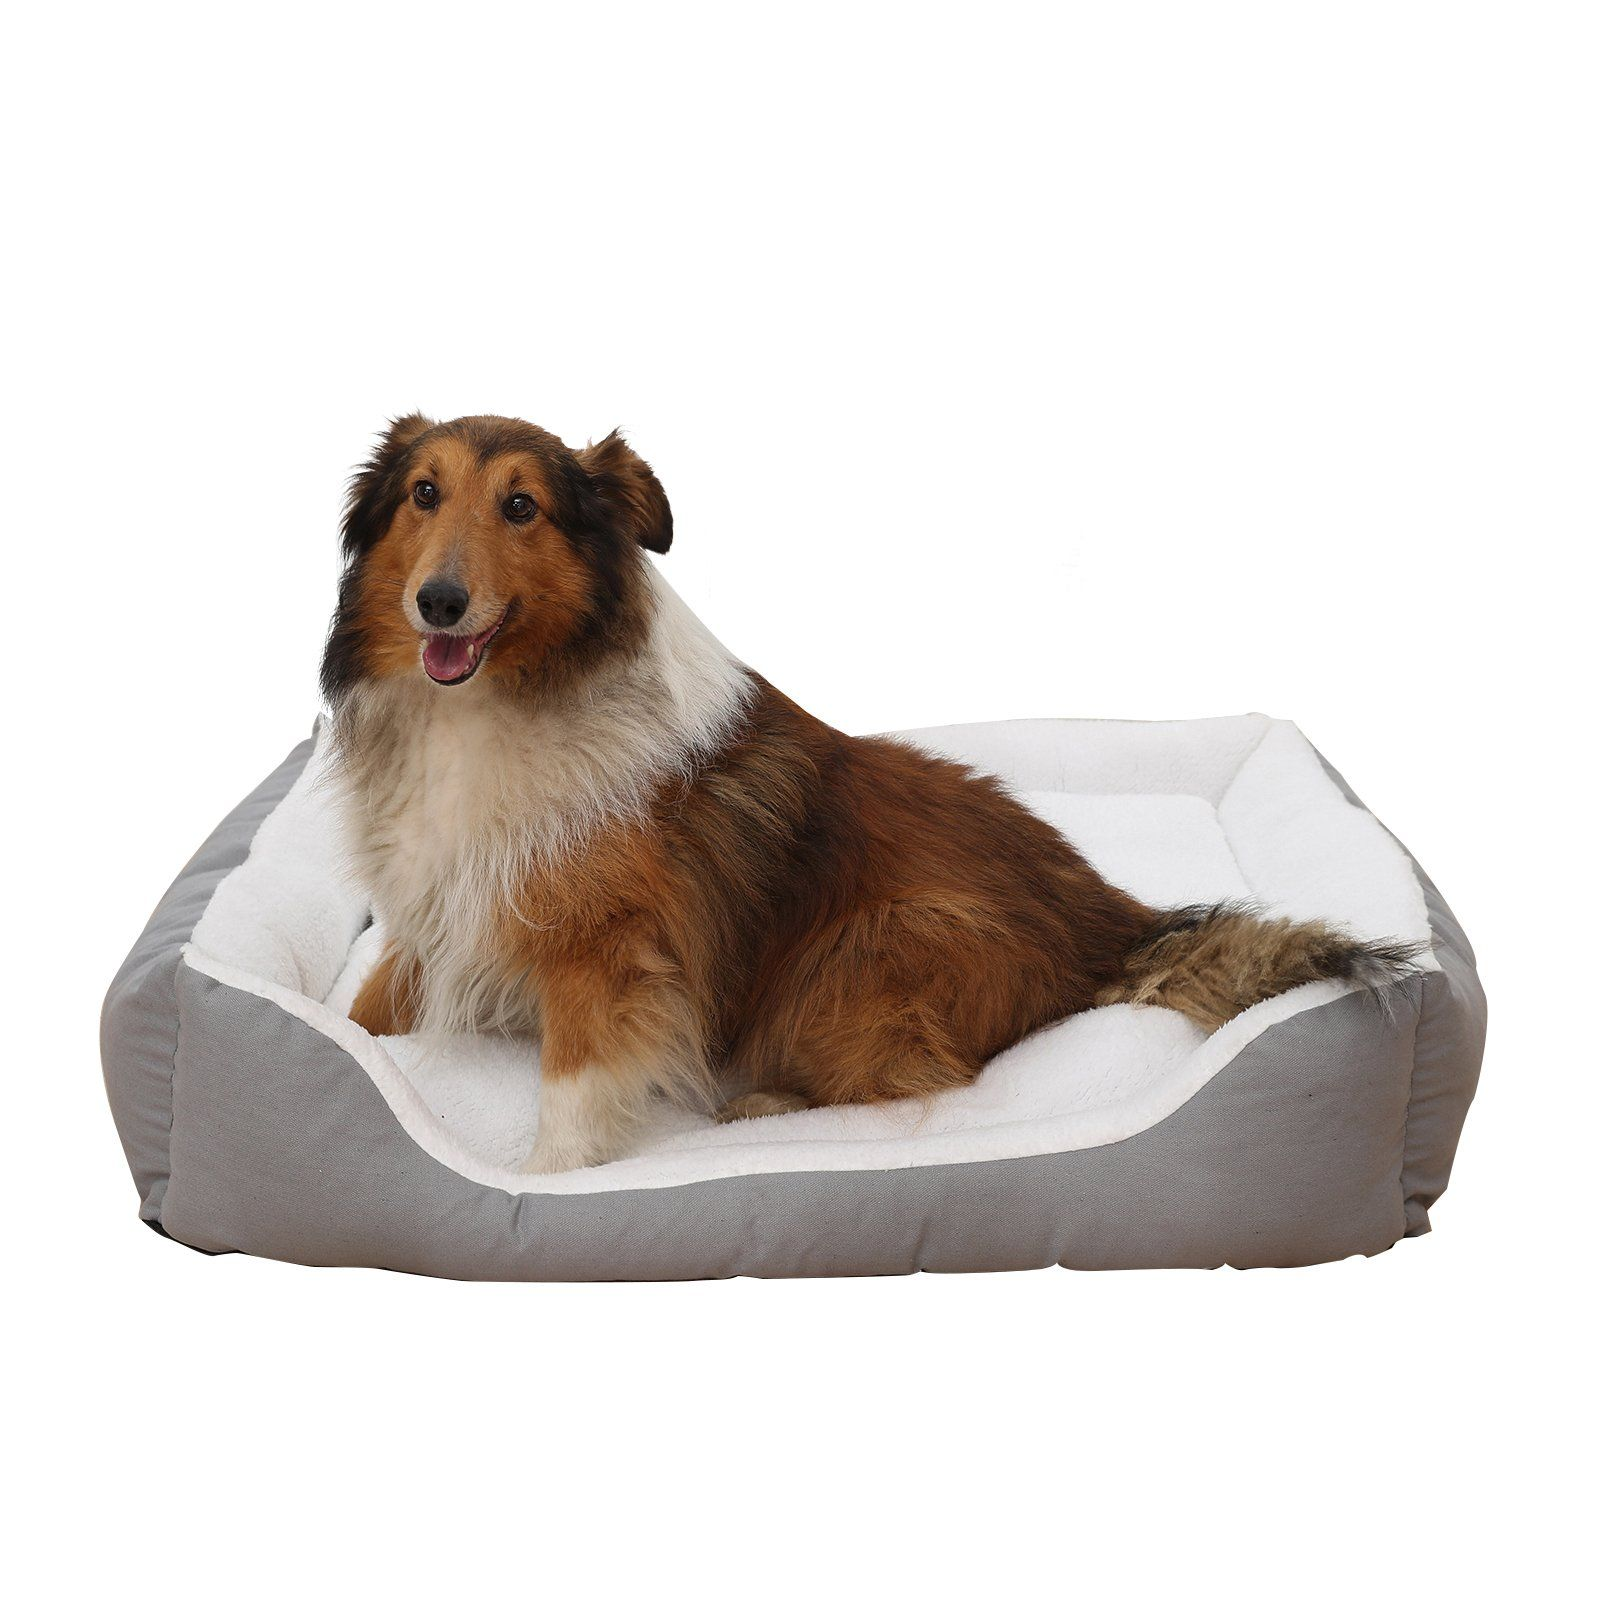 Petwe Pet Bed Soft Plush Dog Bed Reversible Bolster Pillow With Removable Washable Cover Small Medium Large Jumbo Whit Plush Dog Bed Dog Bed Orthopedic Dog Bed